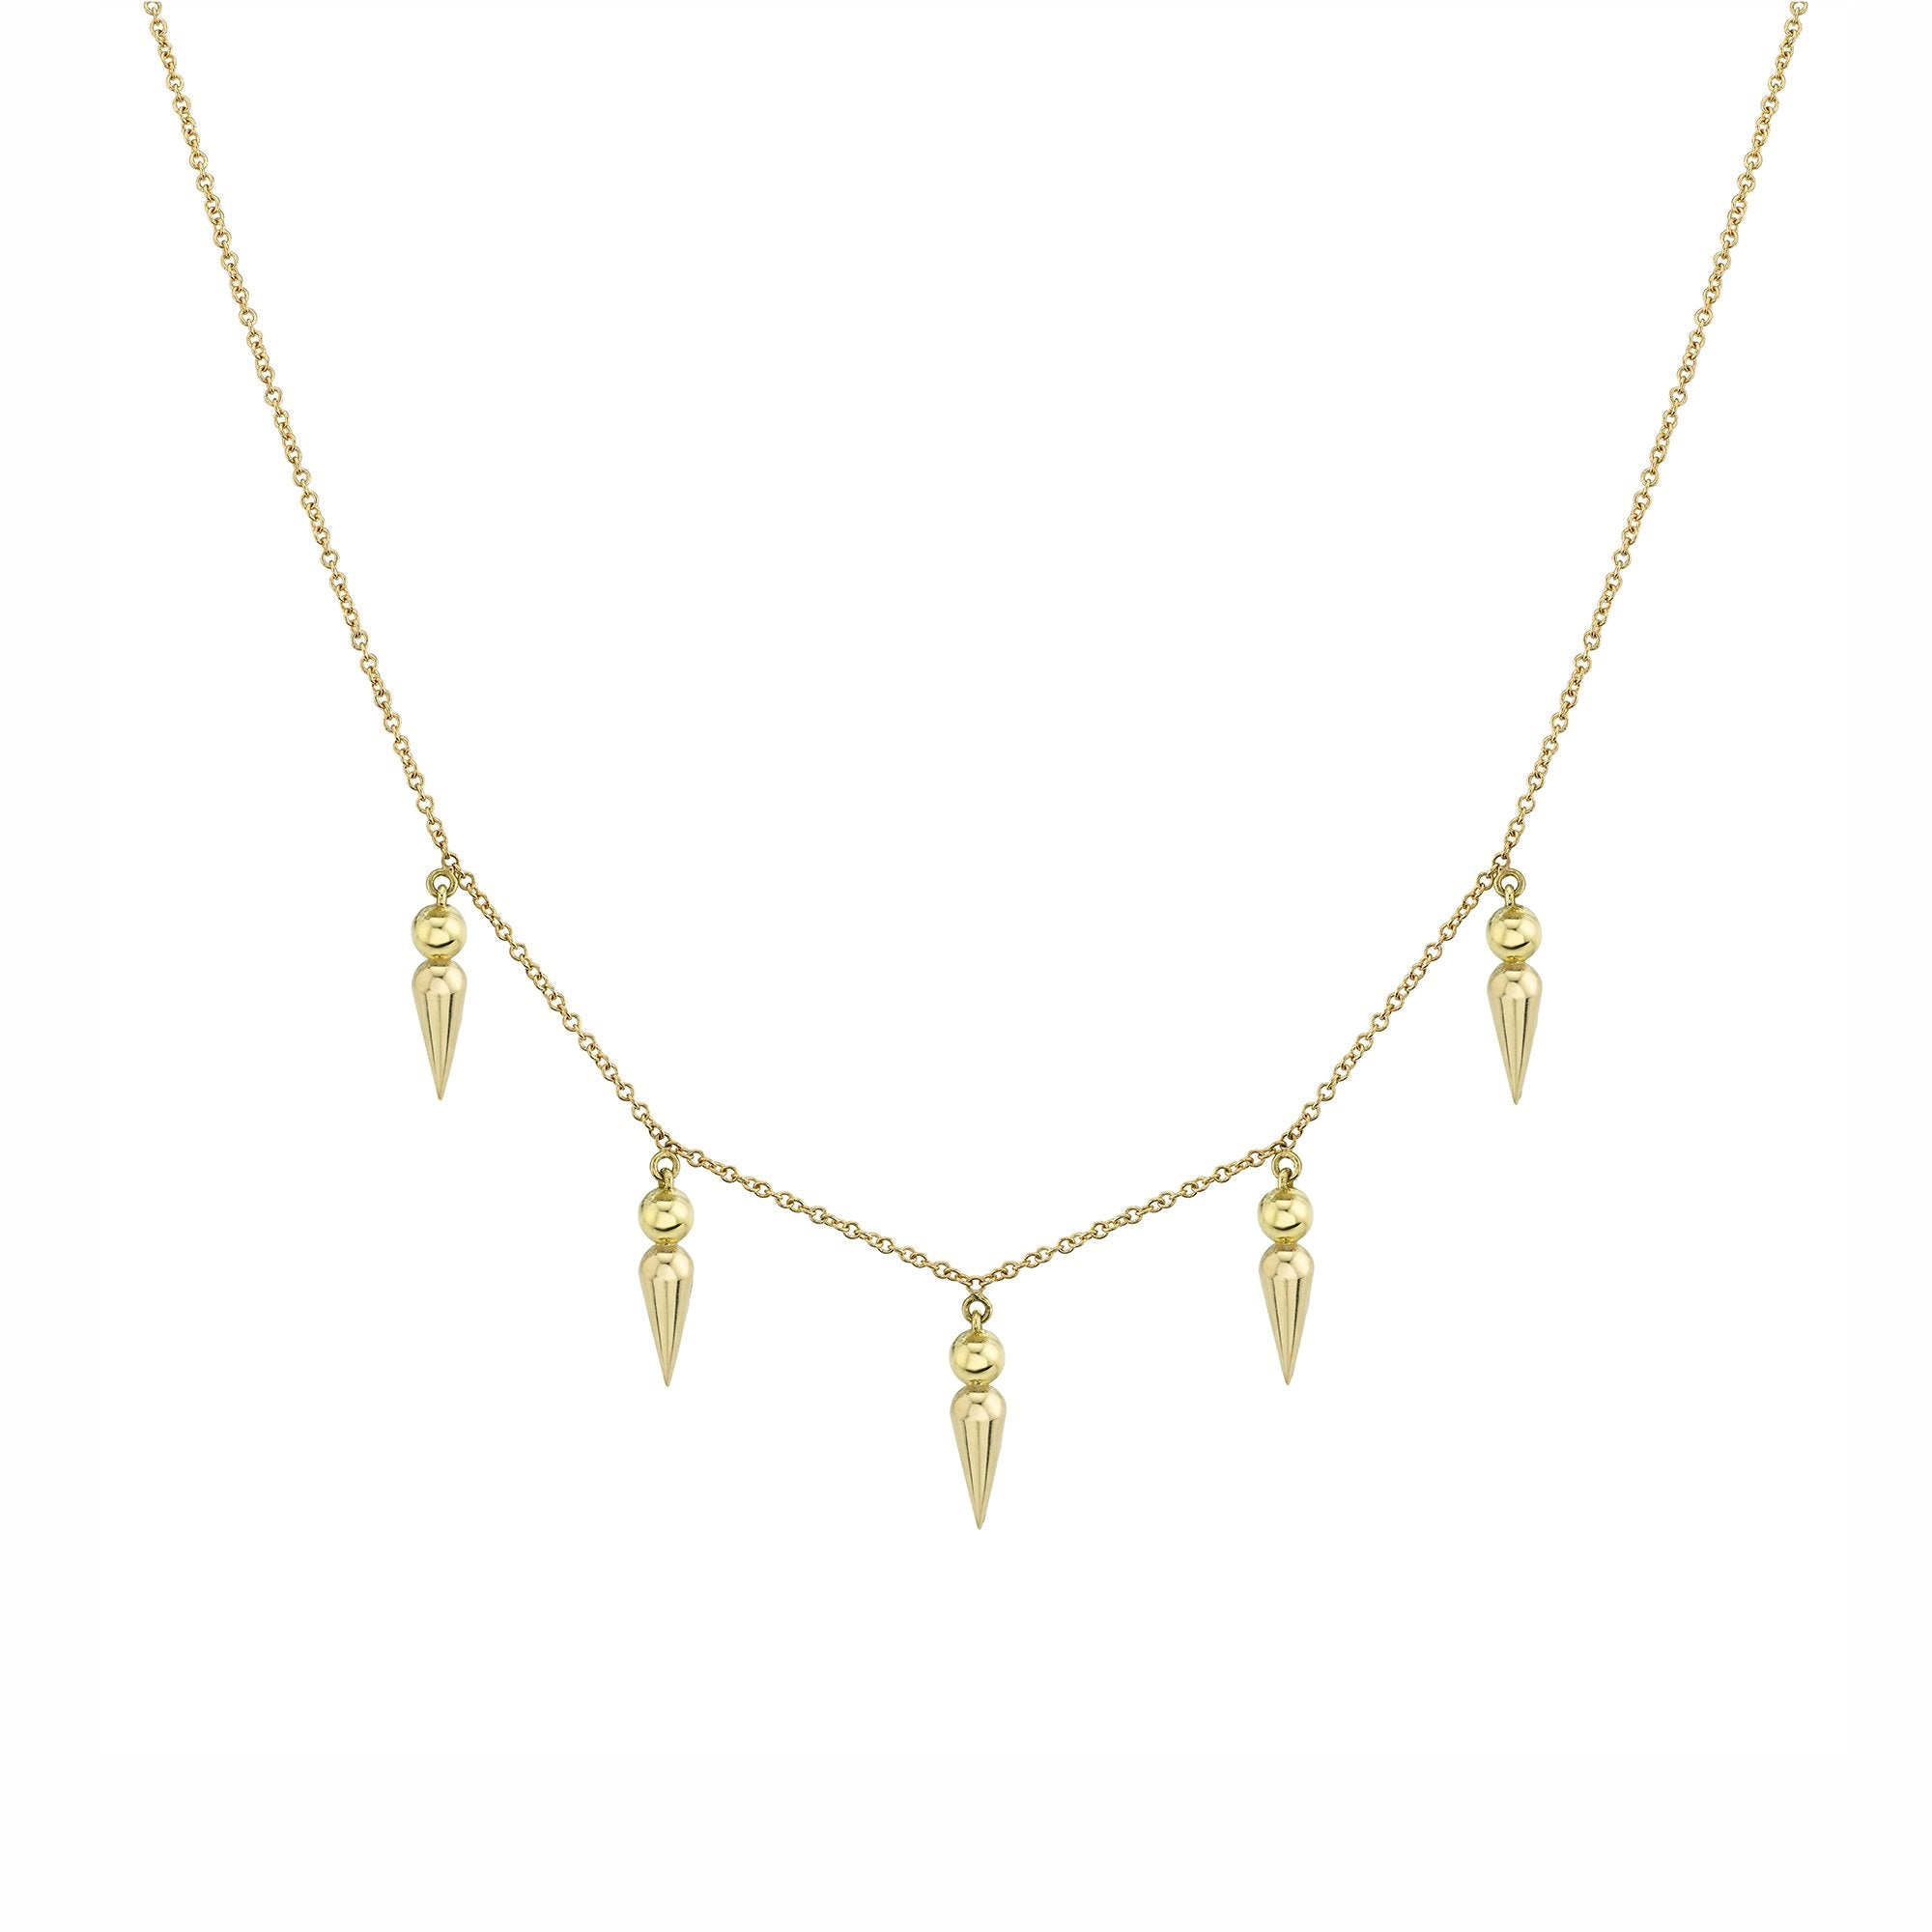 5 Point Spear Tip Collar Necklace - Sarah Hendler - Necklaces | Broken English Jewelry